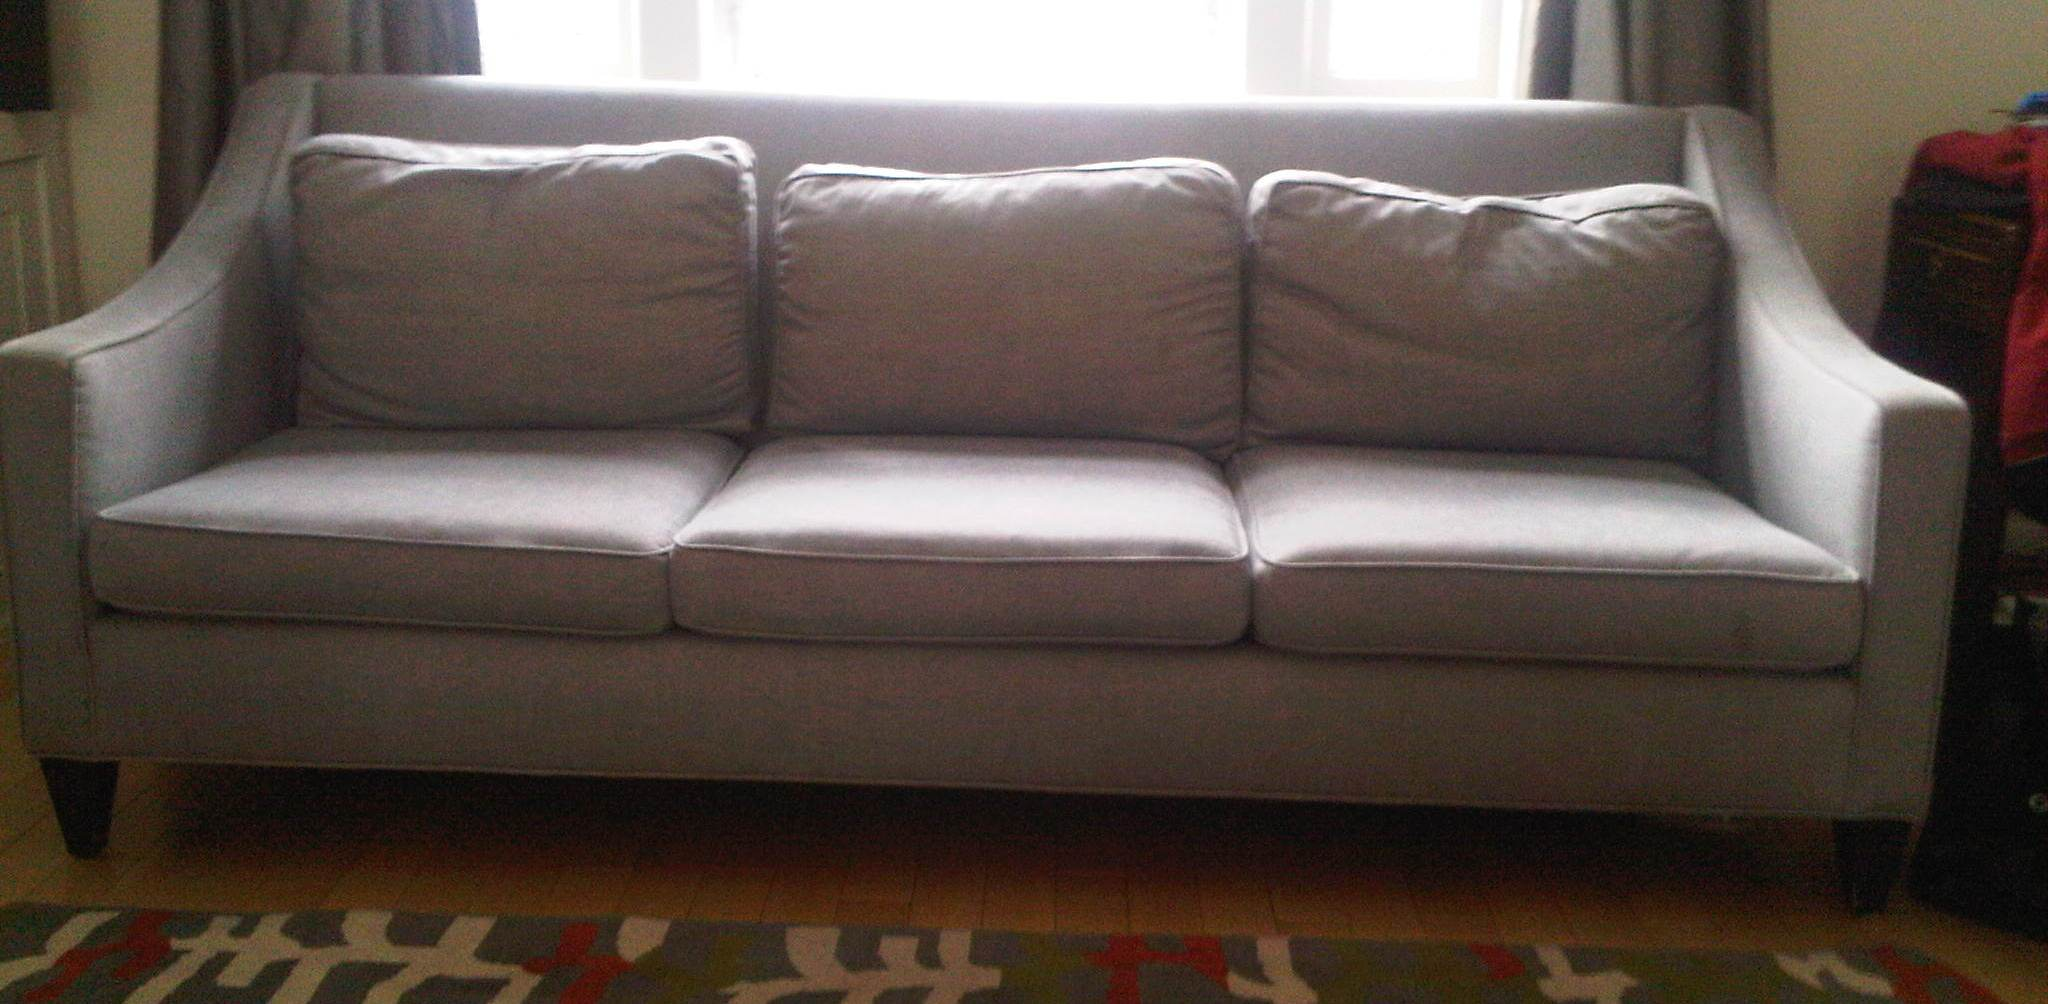 Jags Furniture Reupholstery Sofa Reupholstery Samples